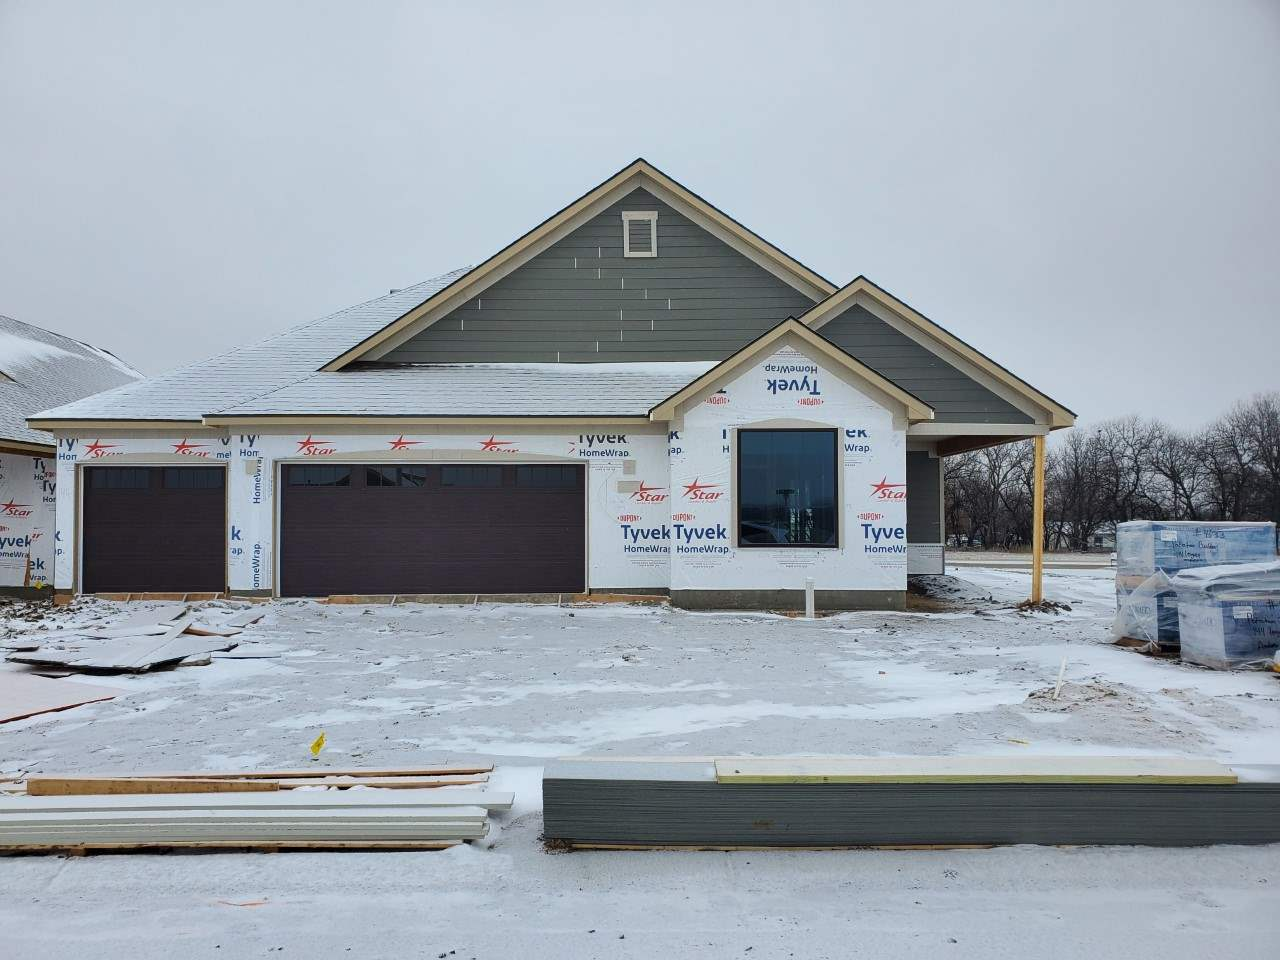 Verona model home for sale- set to finish by early April! This may be the ONLY model home that sits